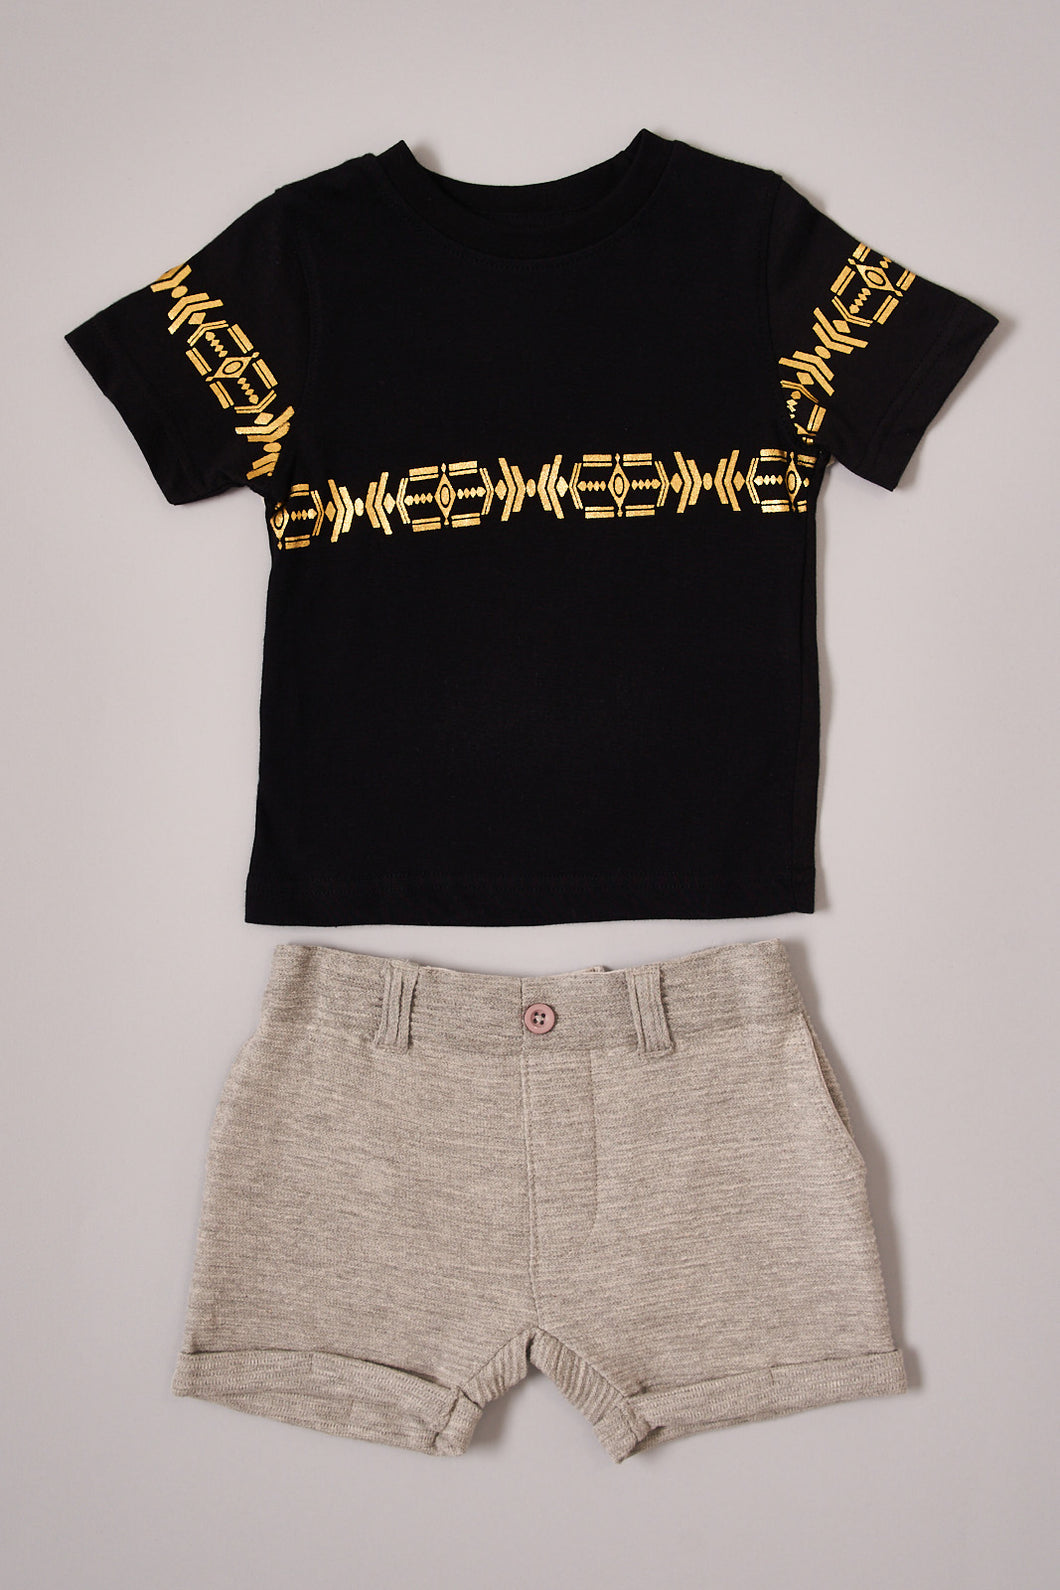 Black Foil Printed T-Shirt and Beige Shorts Set